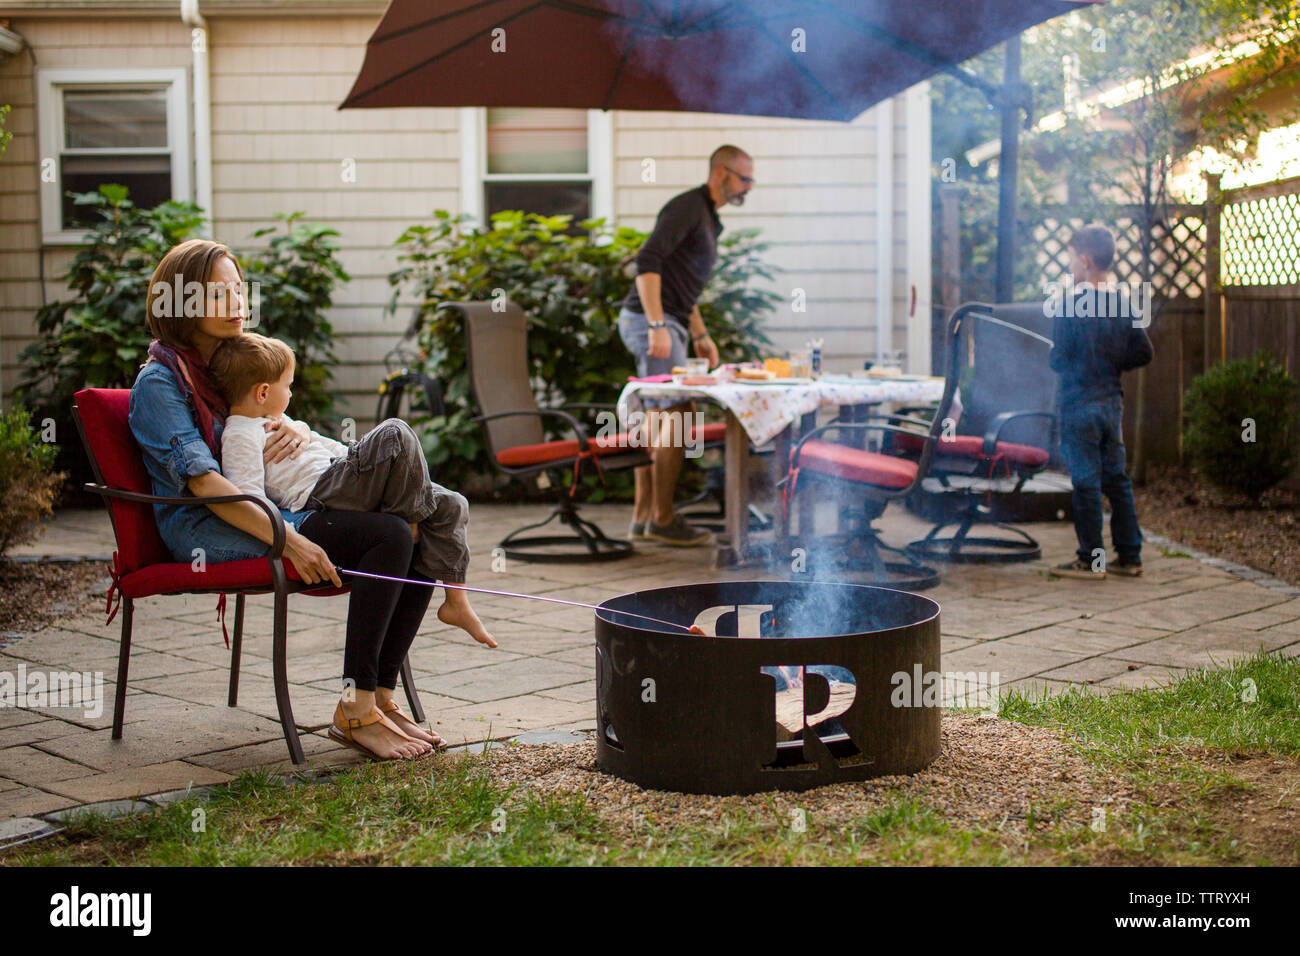 a family sits on their patio preparing dinner together Stock Photo